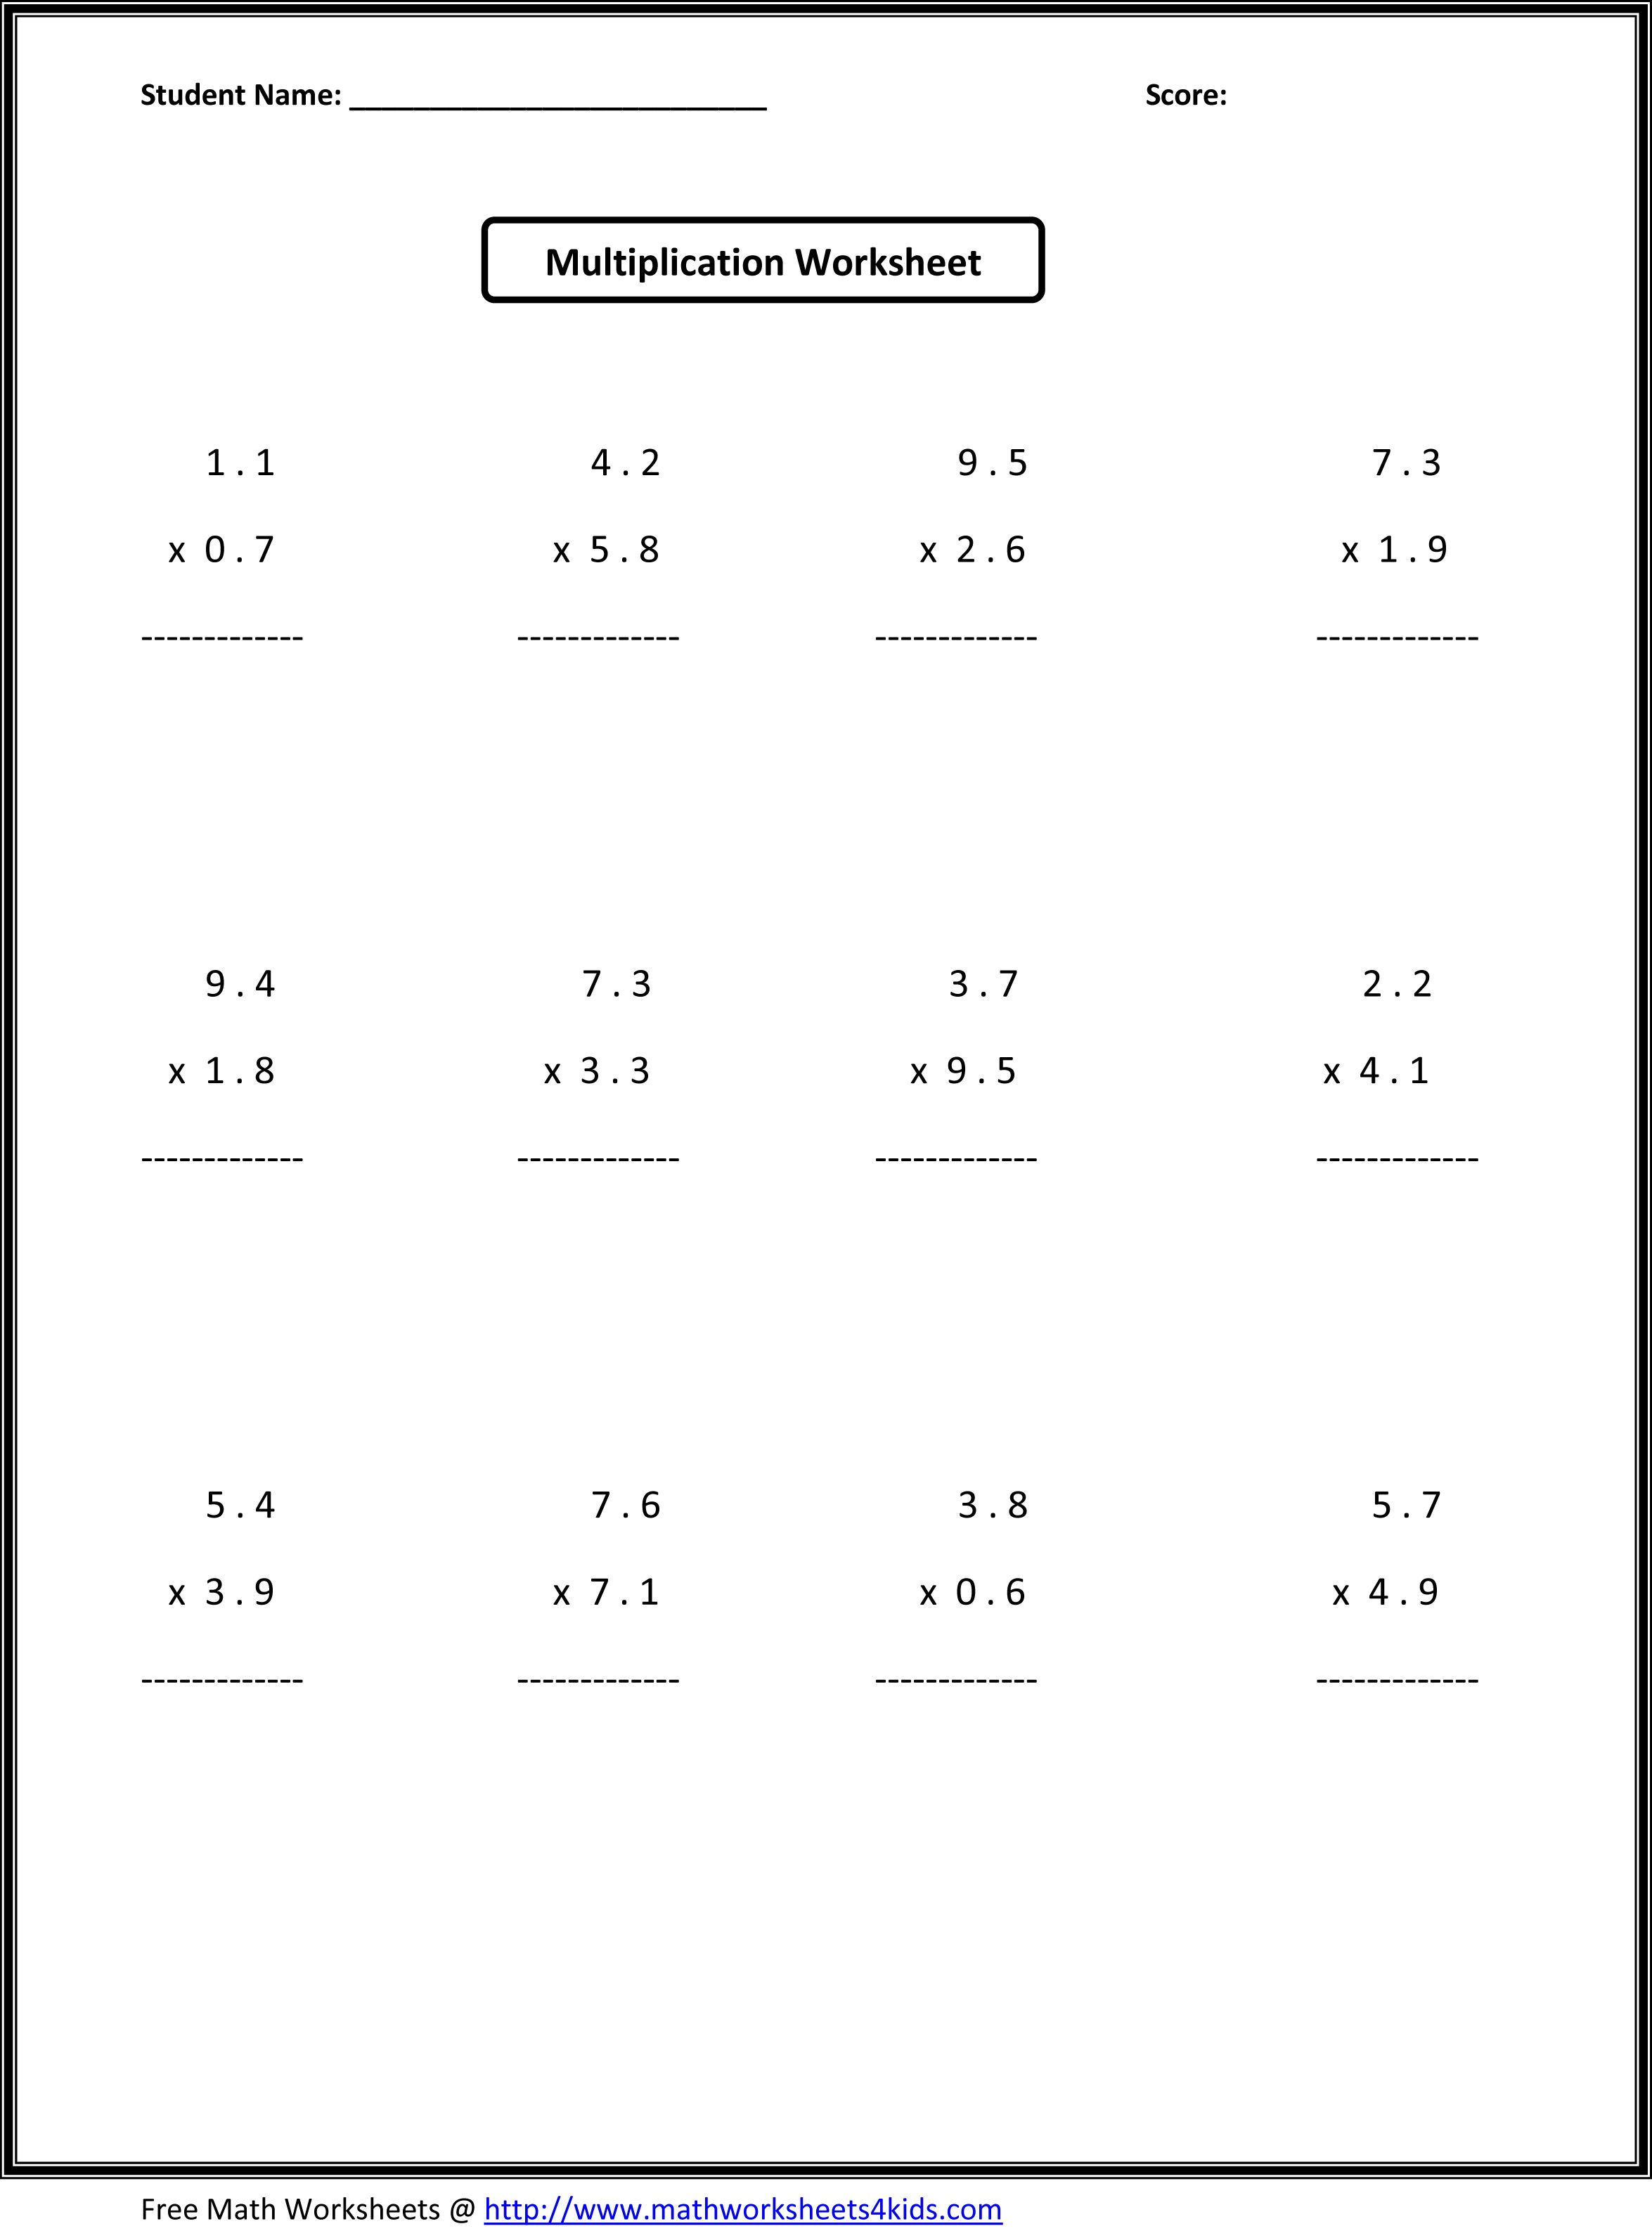 Printables Multiplying Decimals Worksheet 6th Grade 1000 images about math worksheets on pinterest fractions activities and flare